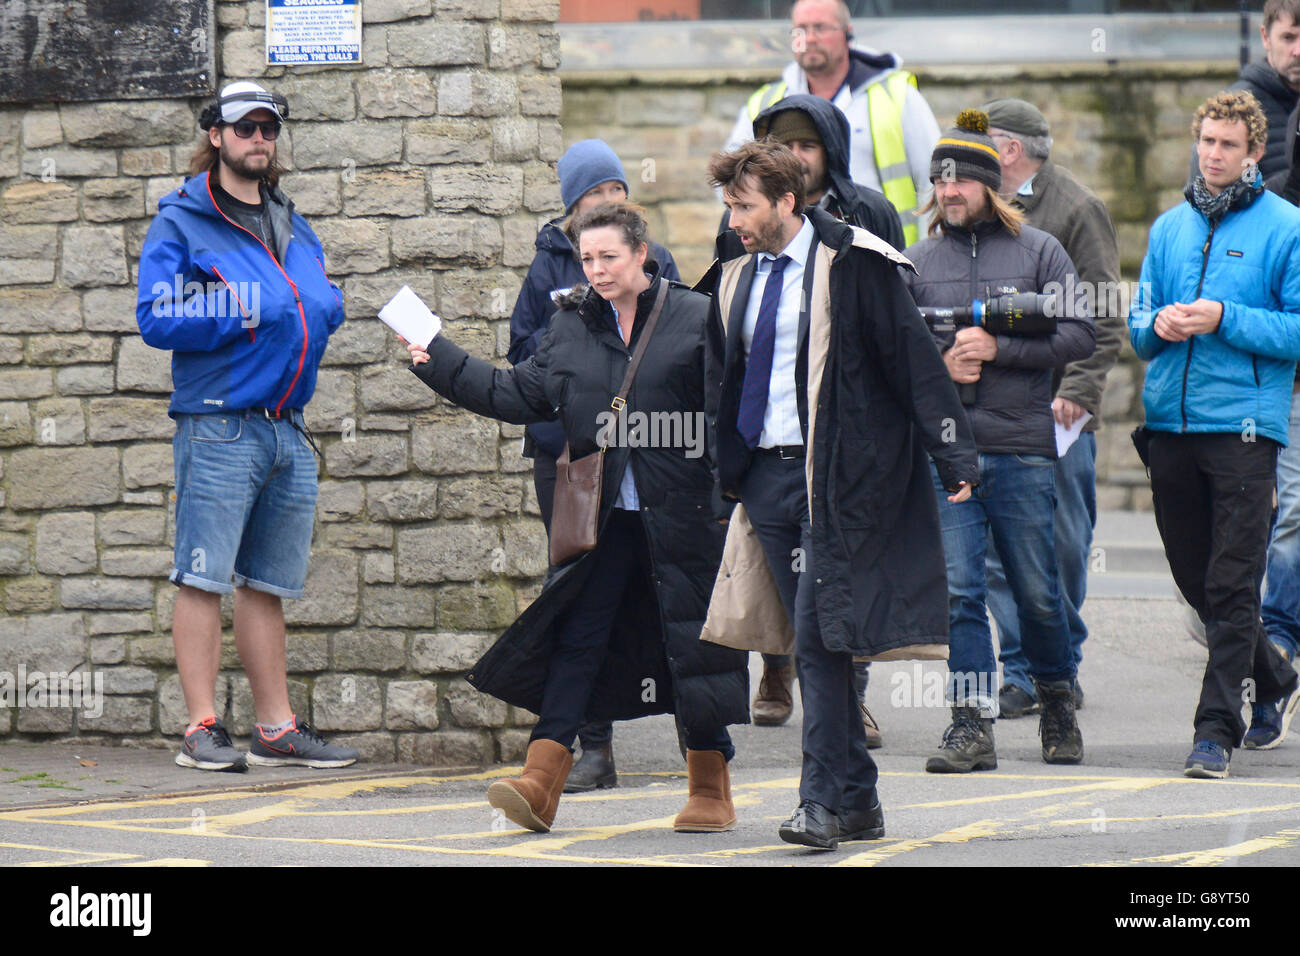 West Bay, Dorset, UK. 30th June 2016. Actors Olivia Colman who plays Detective Miller and David Tennant who plays - Stock Image